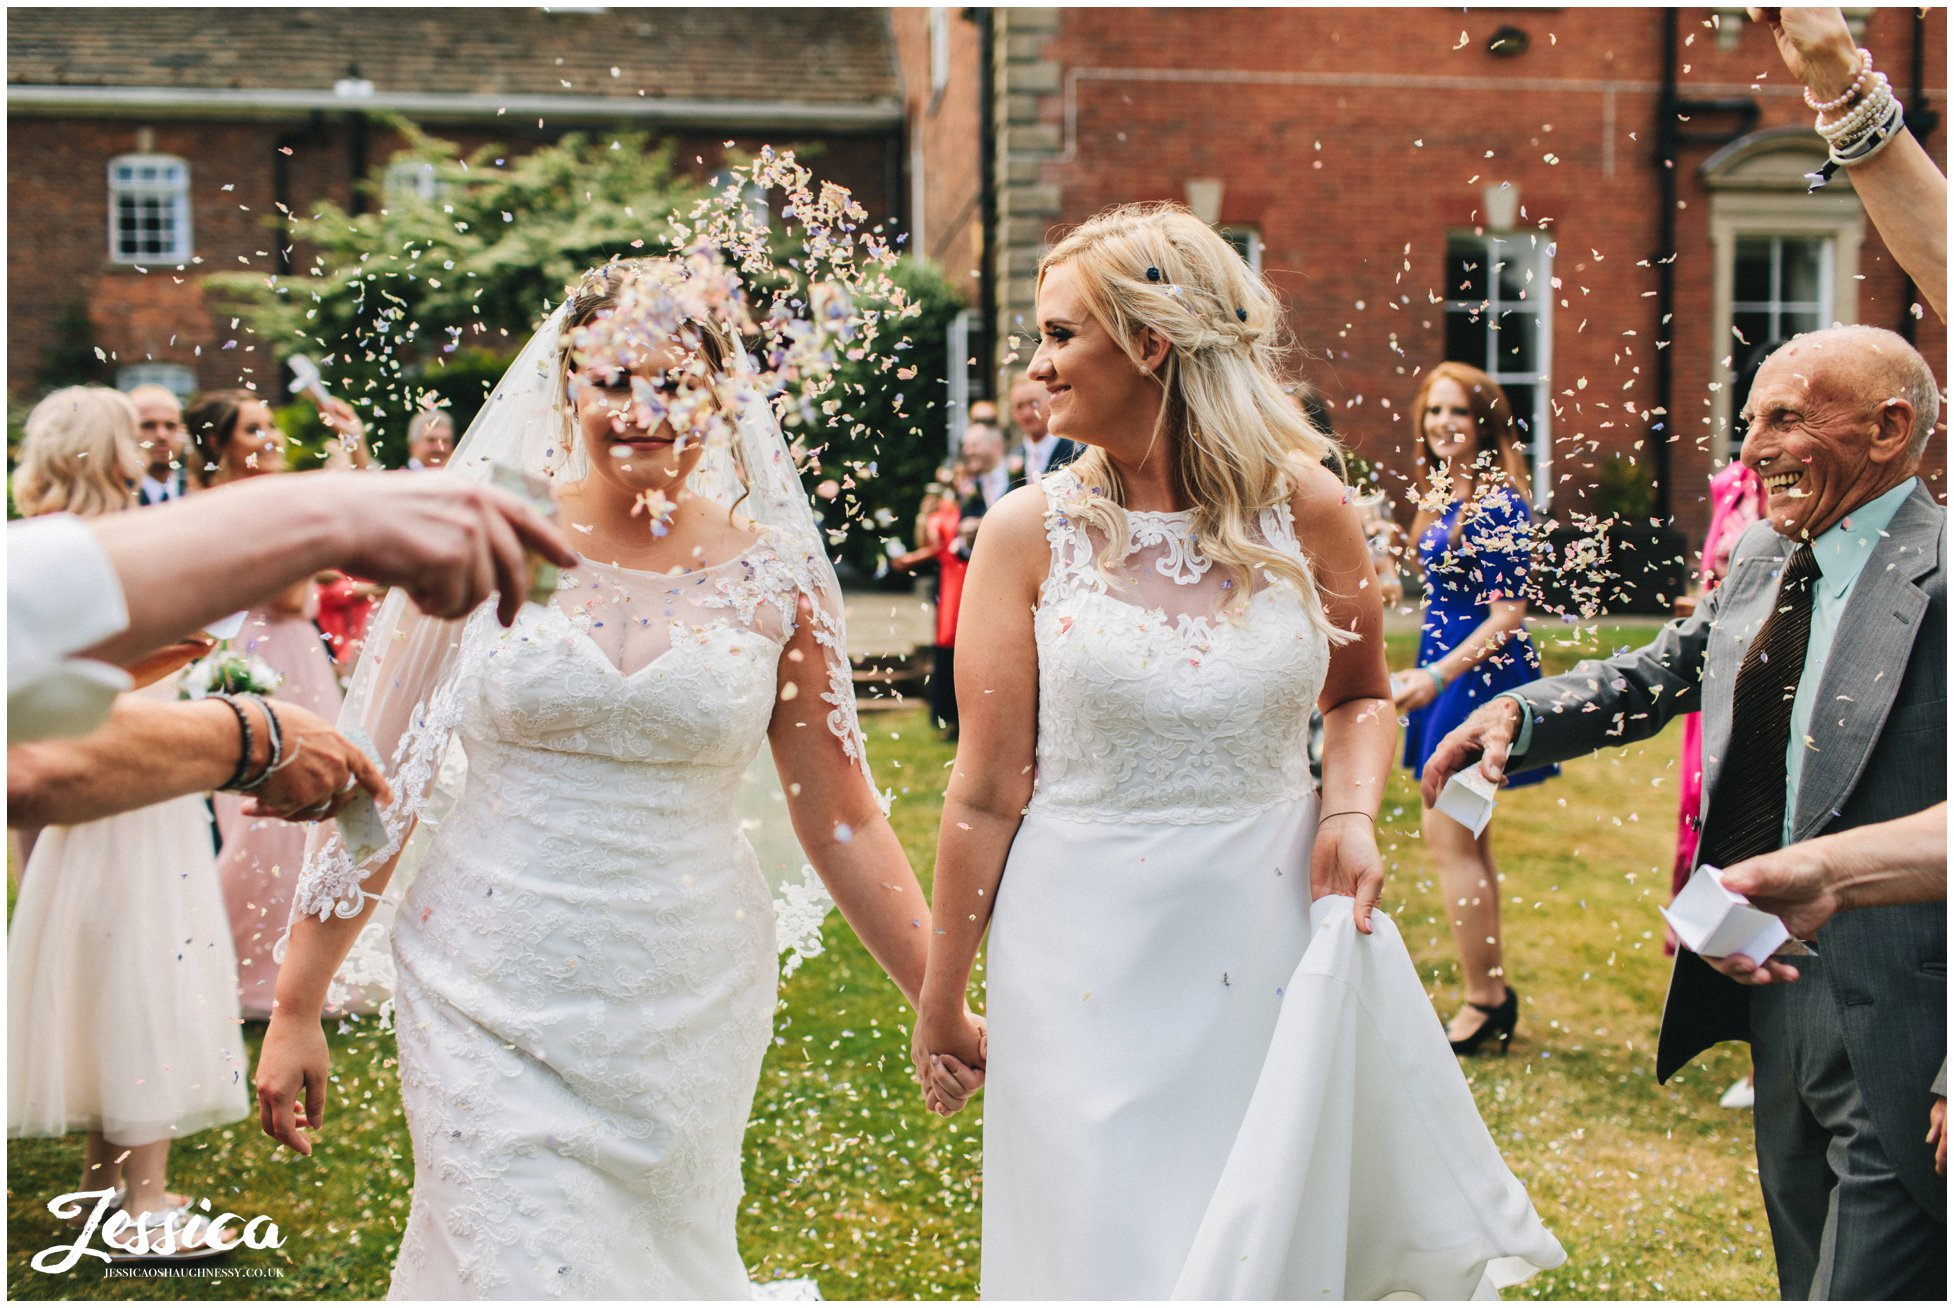 a guest covers one of the brides in confetti